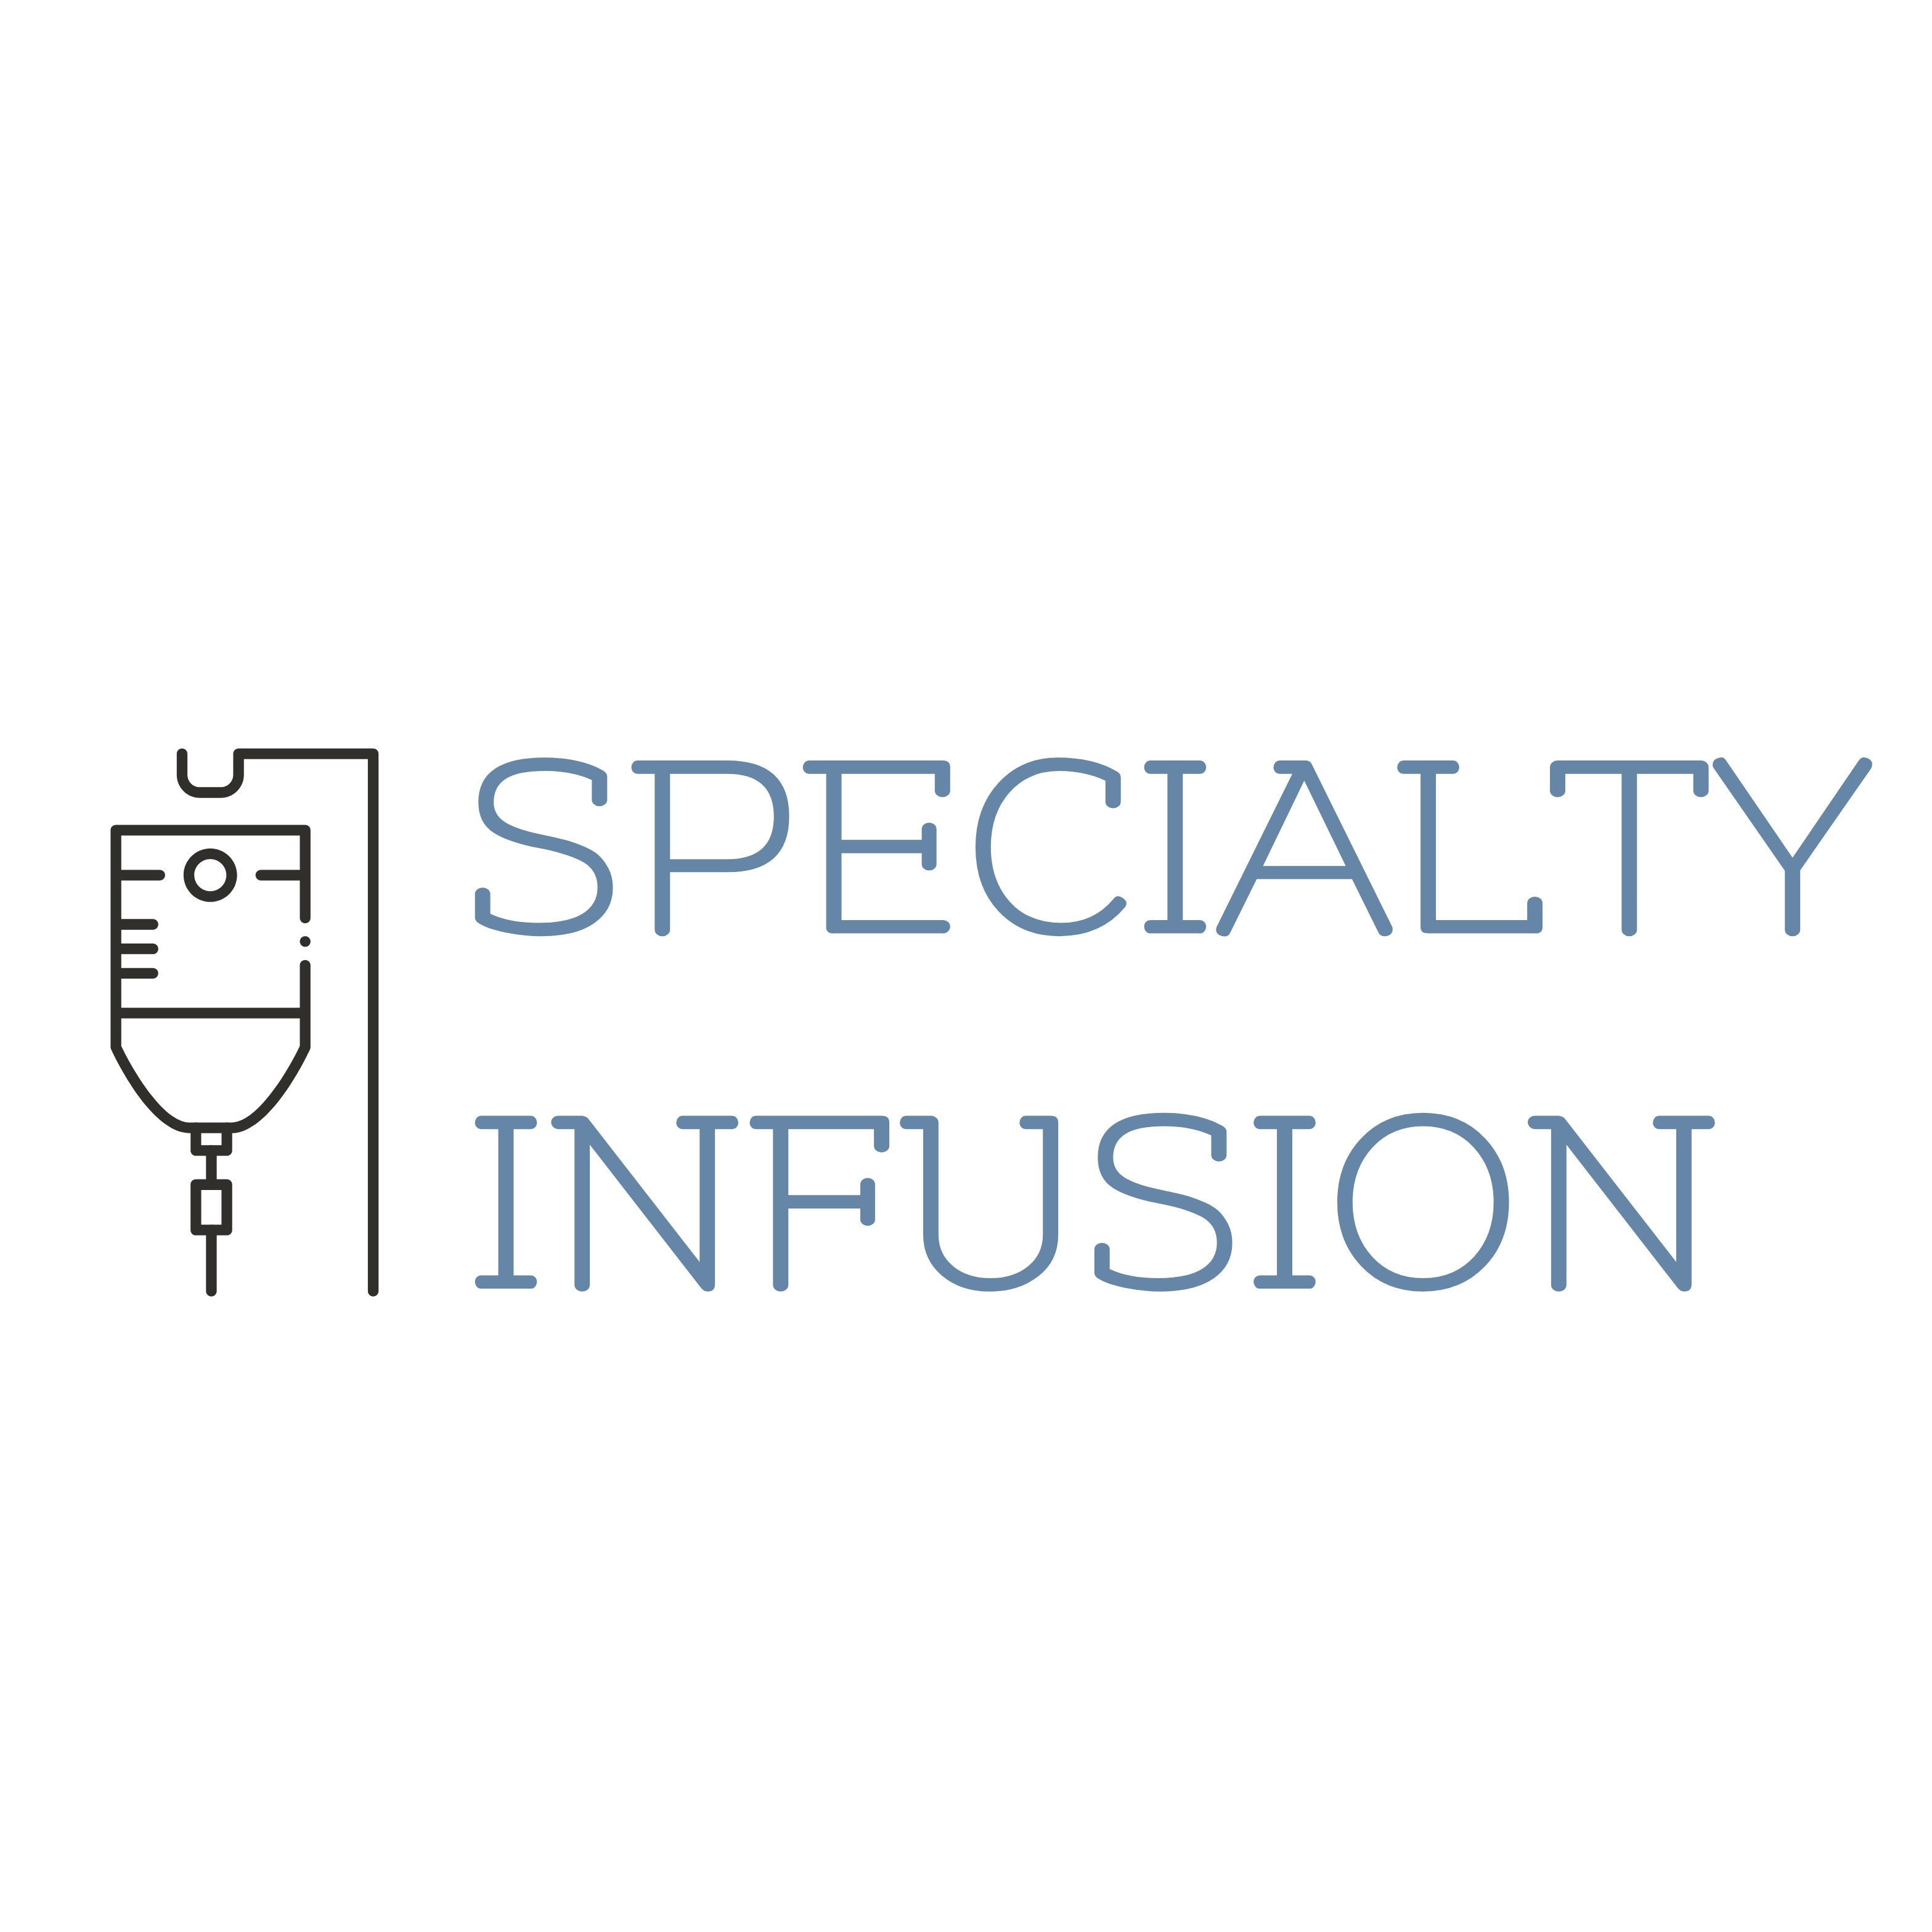 Specialty Infusion